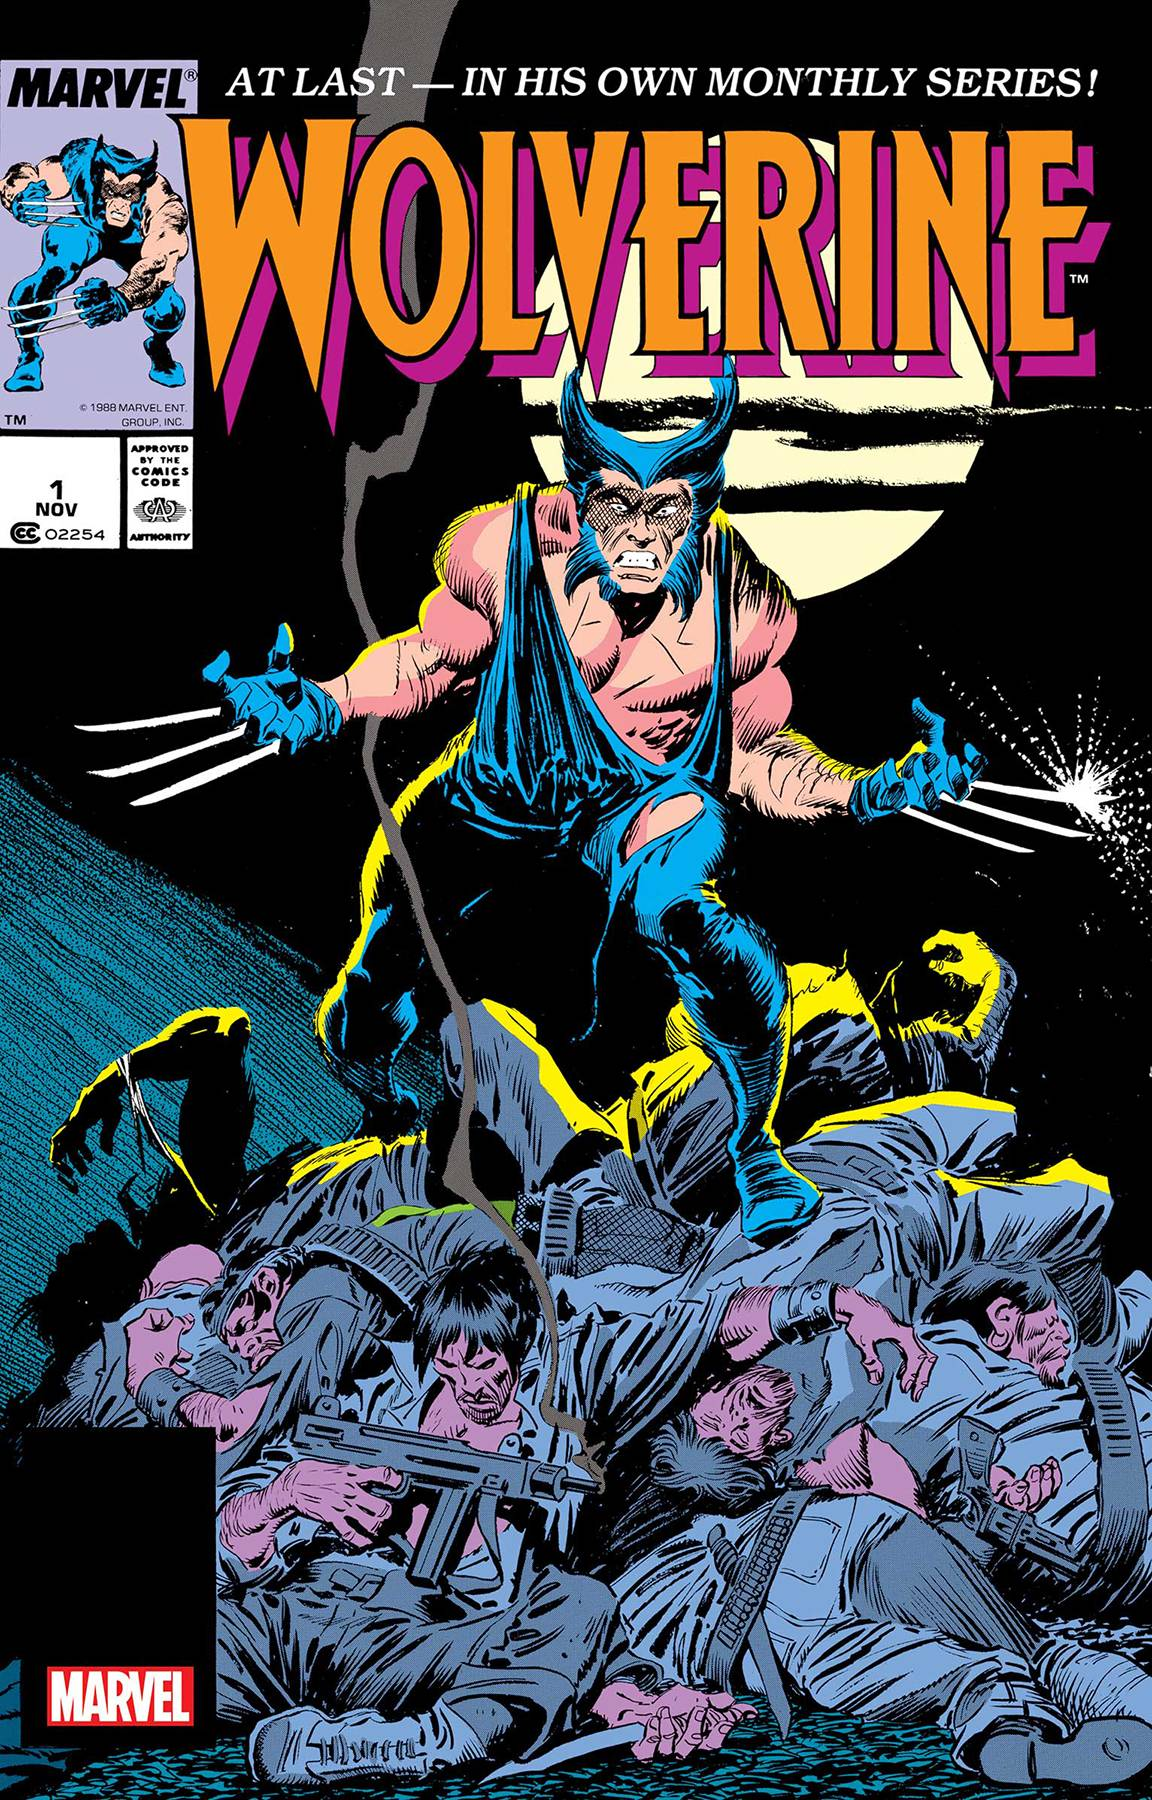 Wolverine #1 by Claremont & Buscema Facsimile Edtion